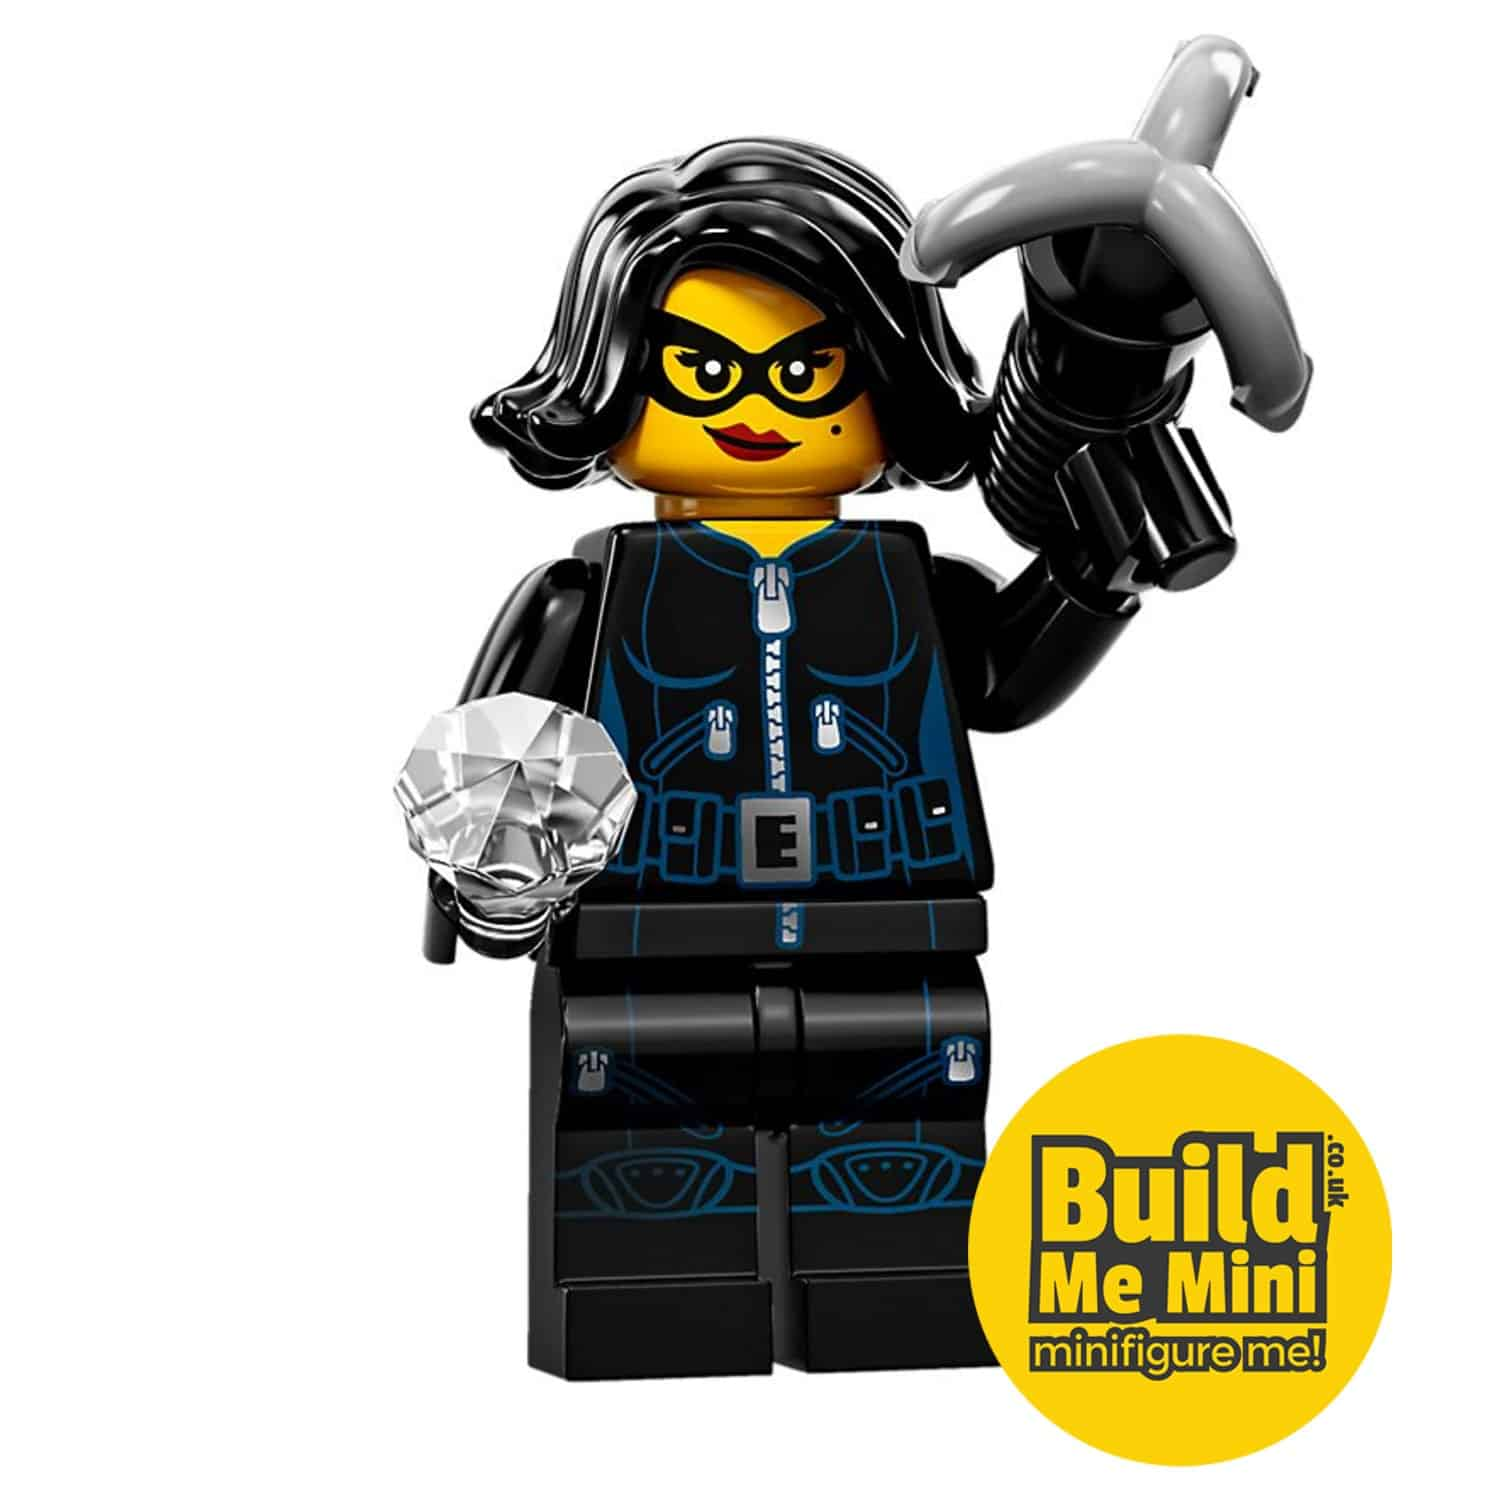 LEGO Jewel Thief Minifigure Series 15